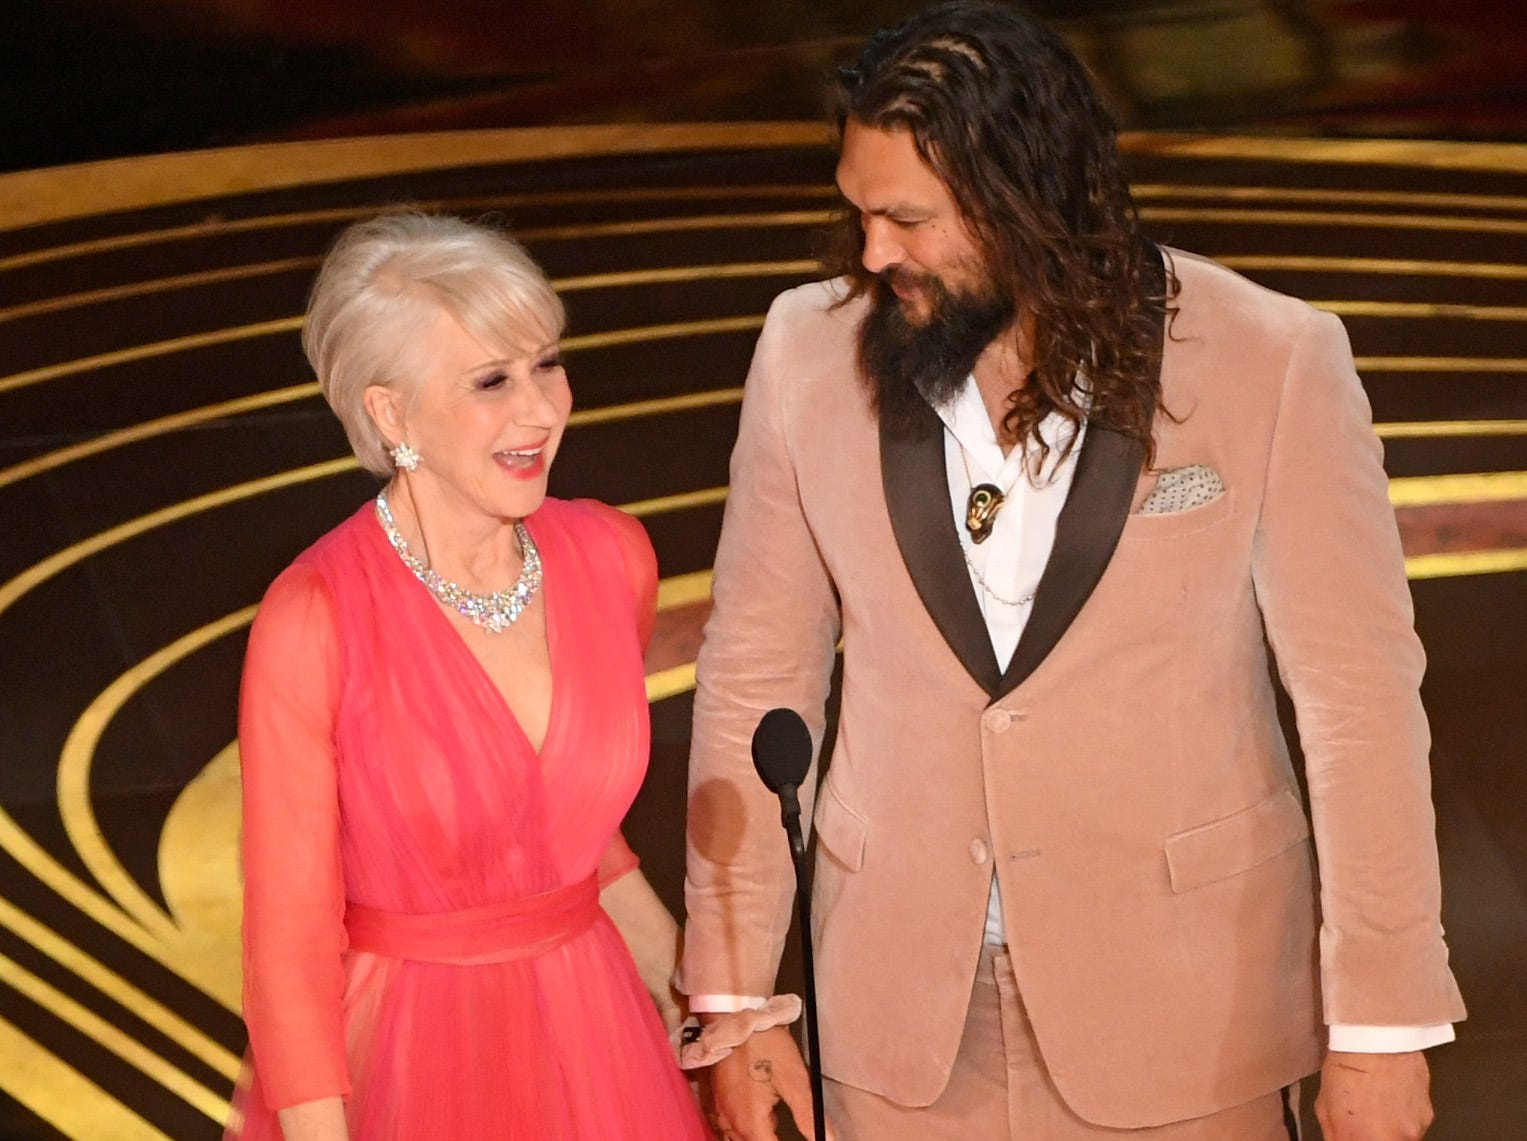 Helen Mirren and Jason Momoa speak on stage during the 91st Annual Academy Awards at Dolby Theatre on February 24, 2019 in Hollywood, California.